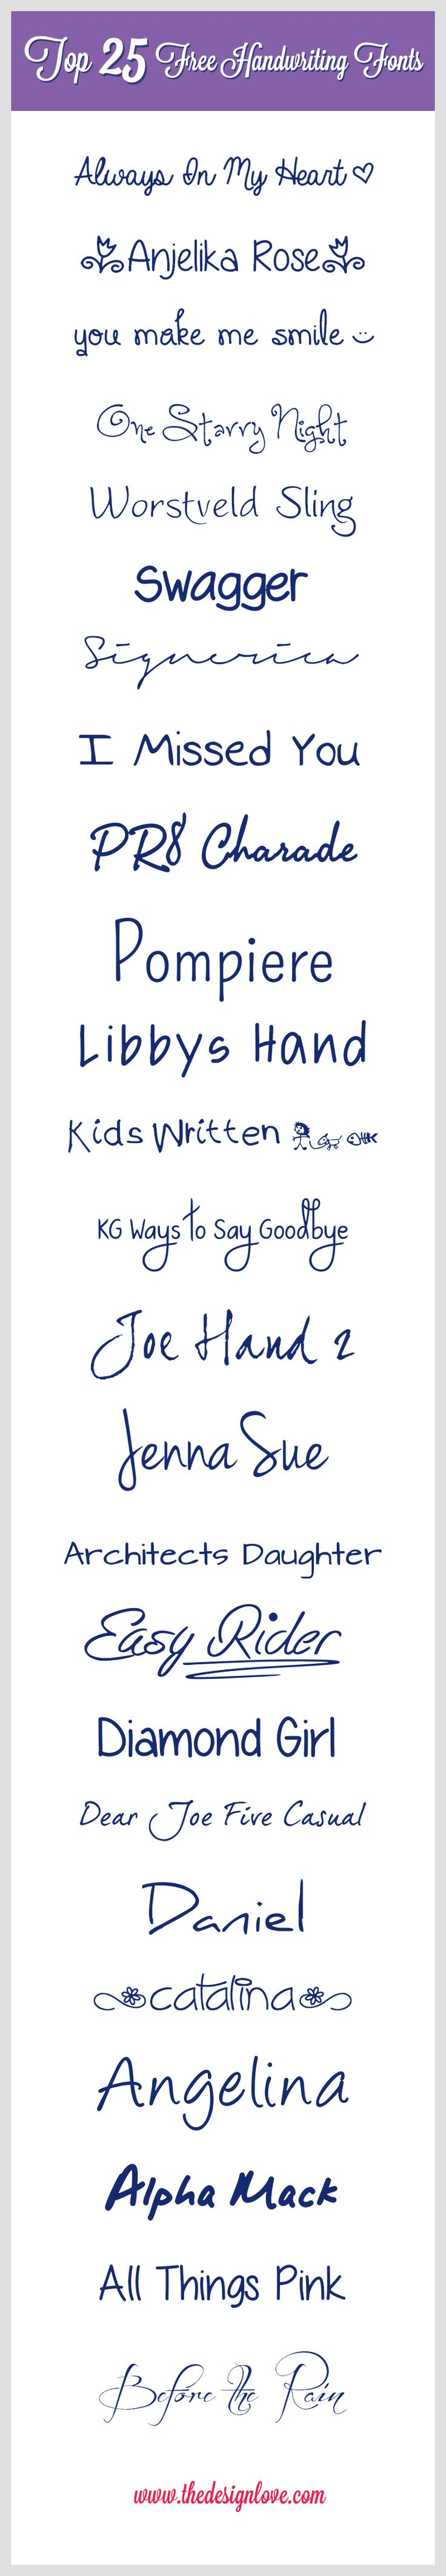 best handwriting fonts free download 25 best ideas about cool handwriting on cool 21391 | 2f4f17af844650faf33442a4df8d2e80